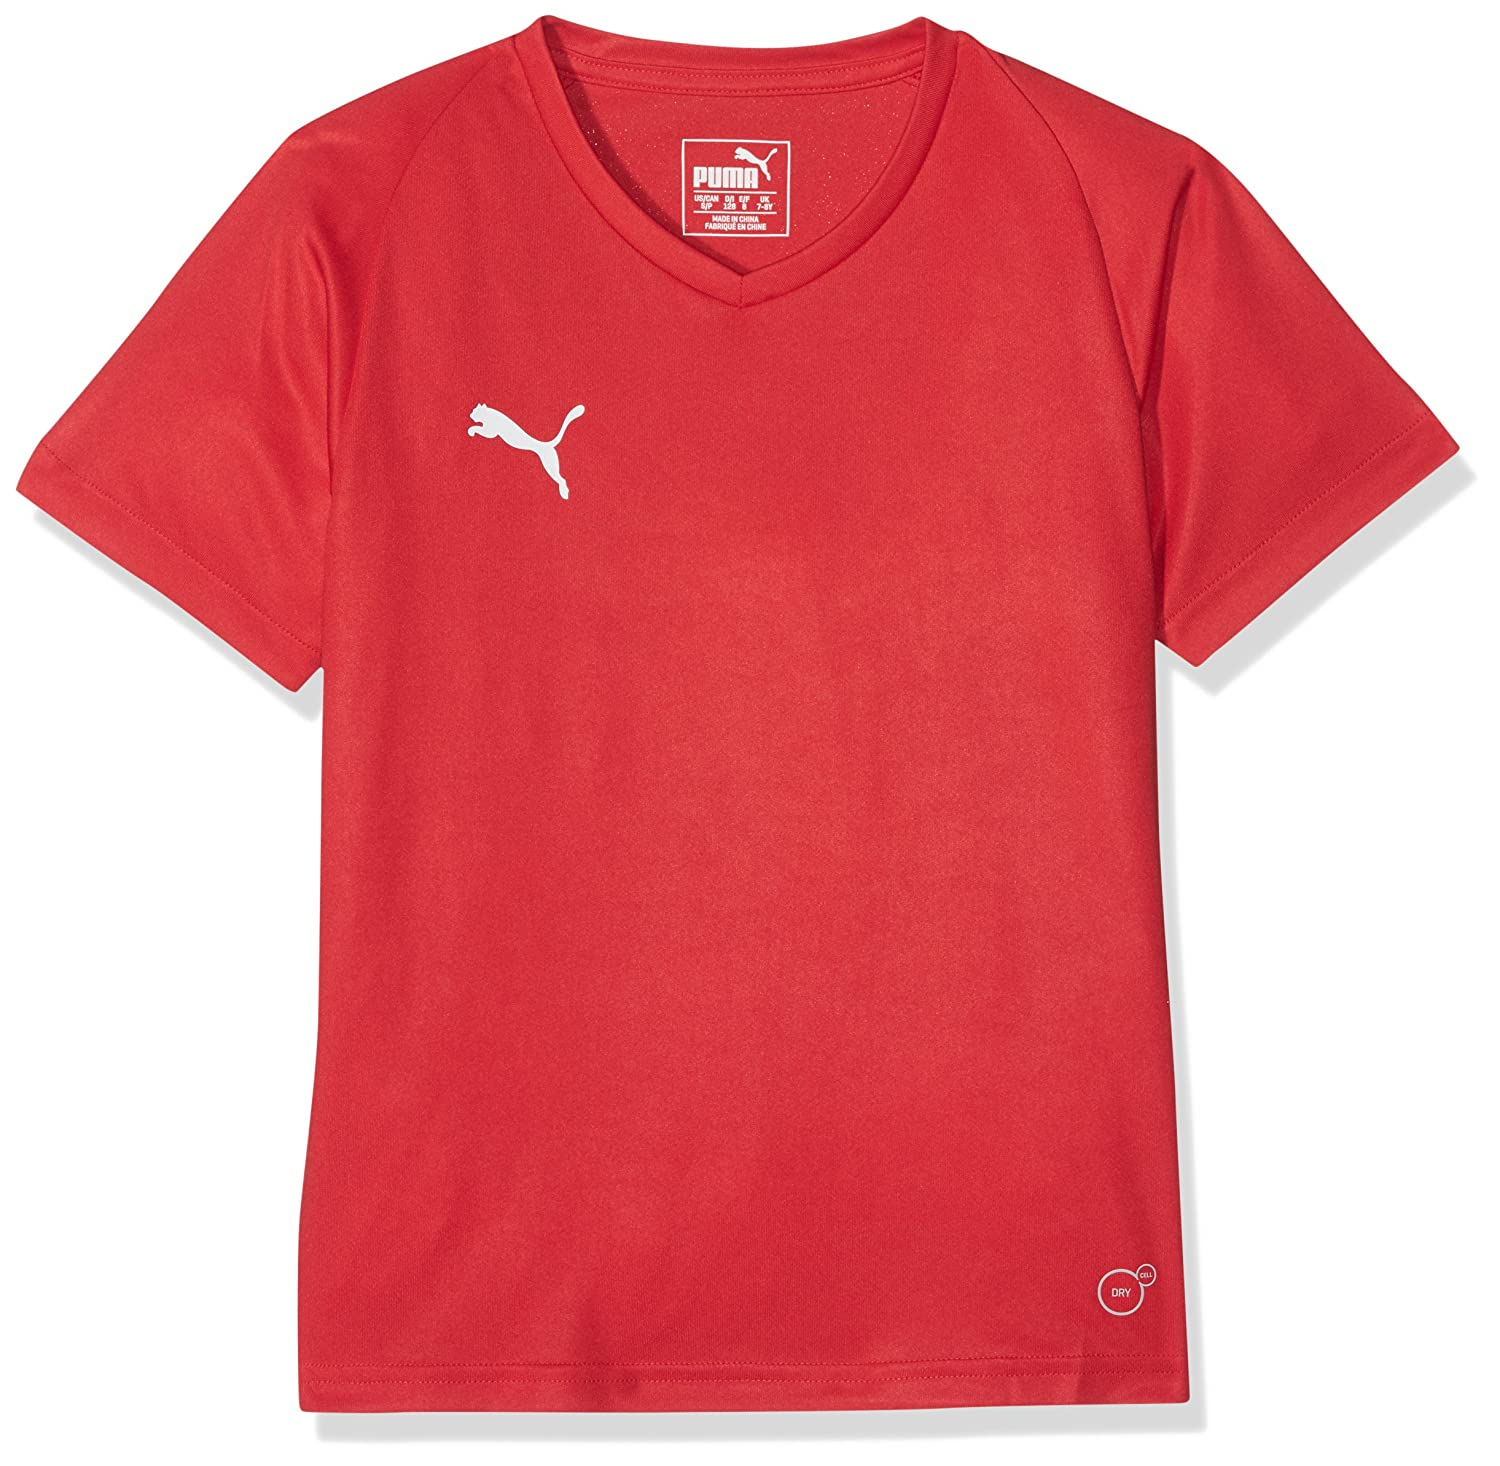 Puma Liga Children Core Jersey Shirt Jersey, Children's Children' s